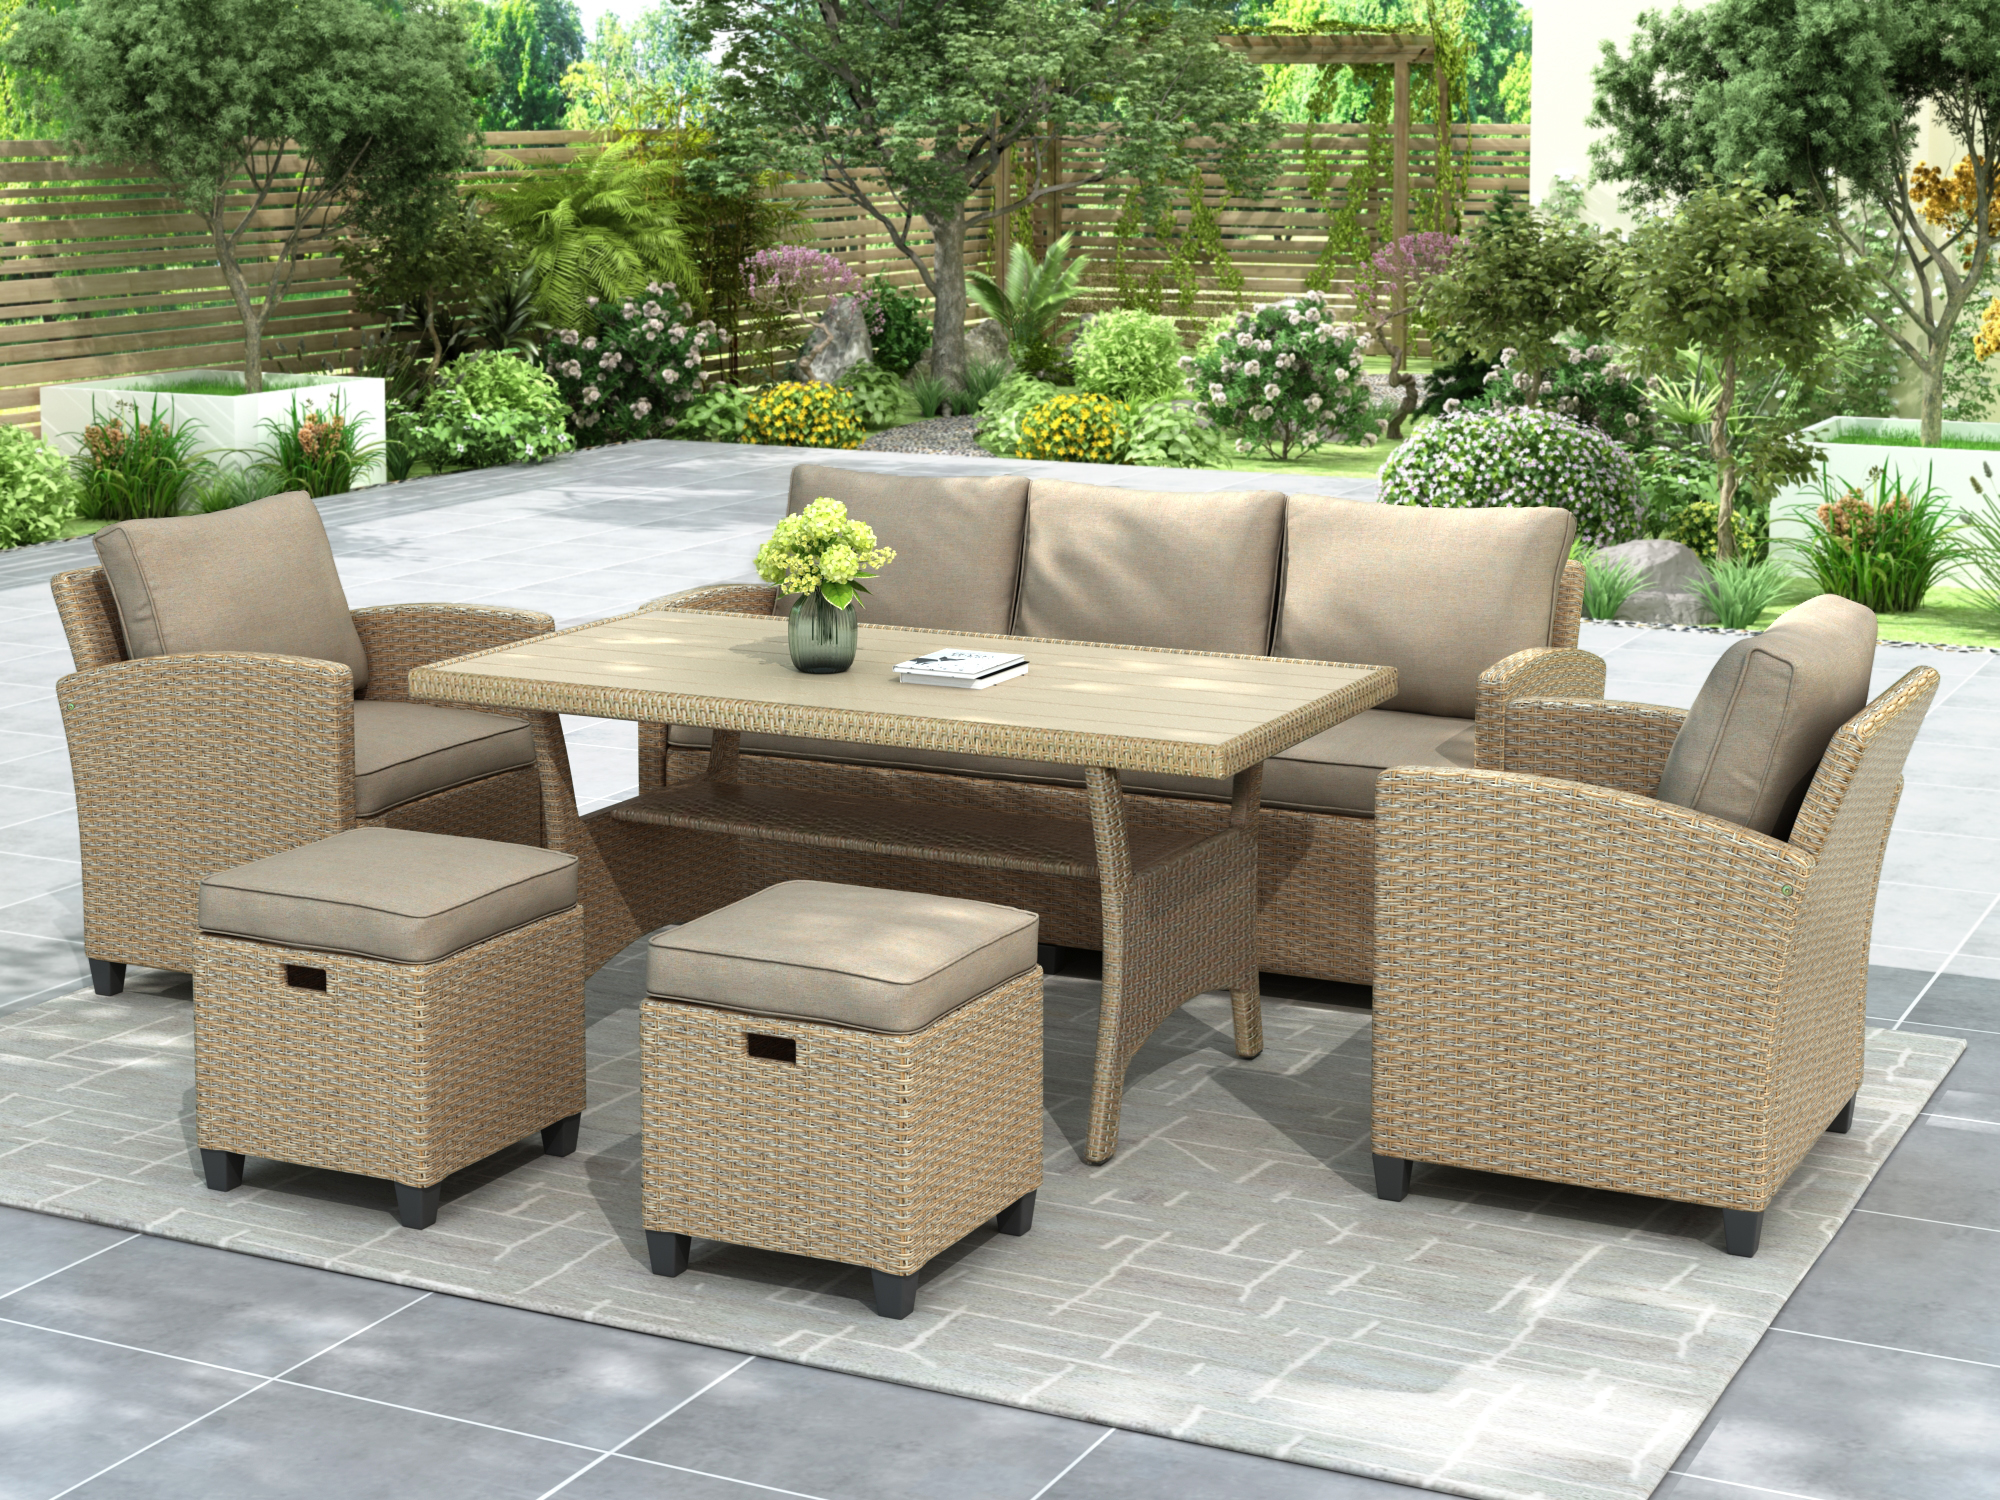 outdoor patio dining set 6 piece wicker furniture set with 3 seat sofa wicker chairs stools dining table all weather outdoor conversation set